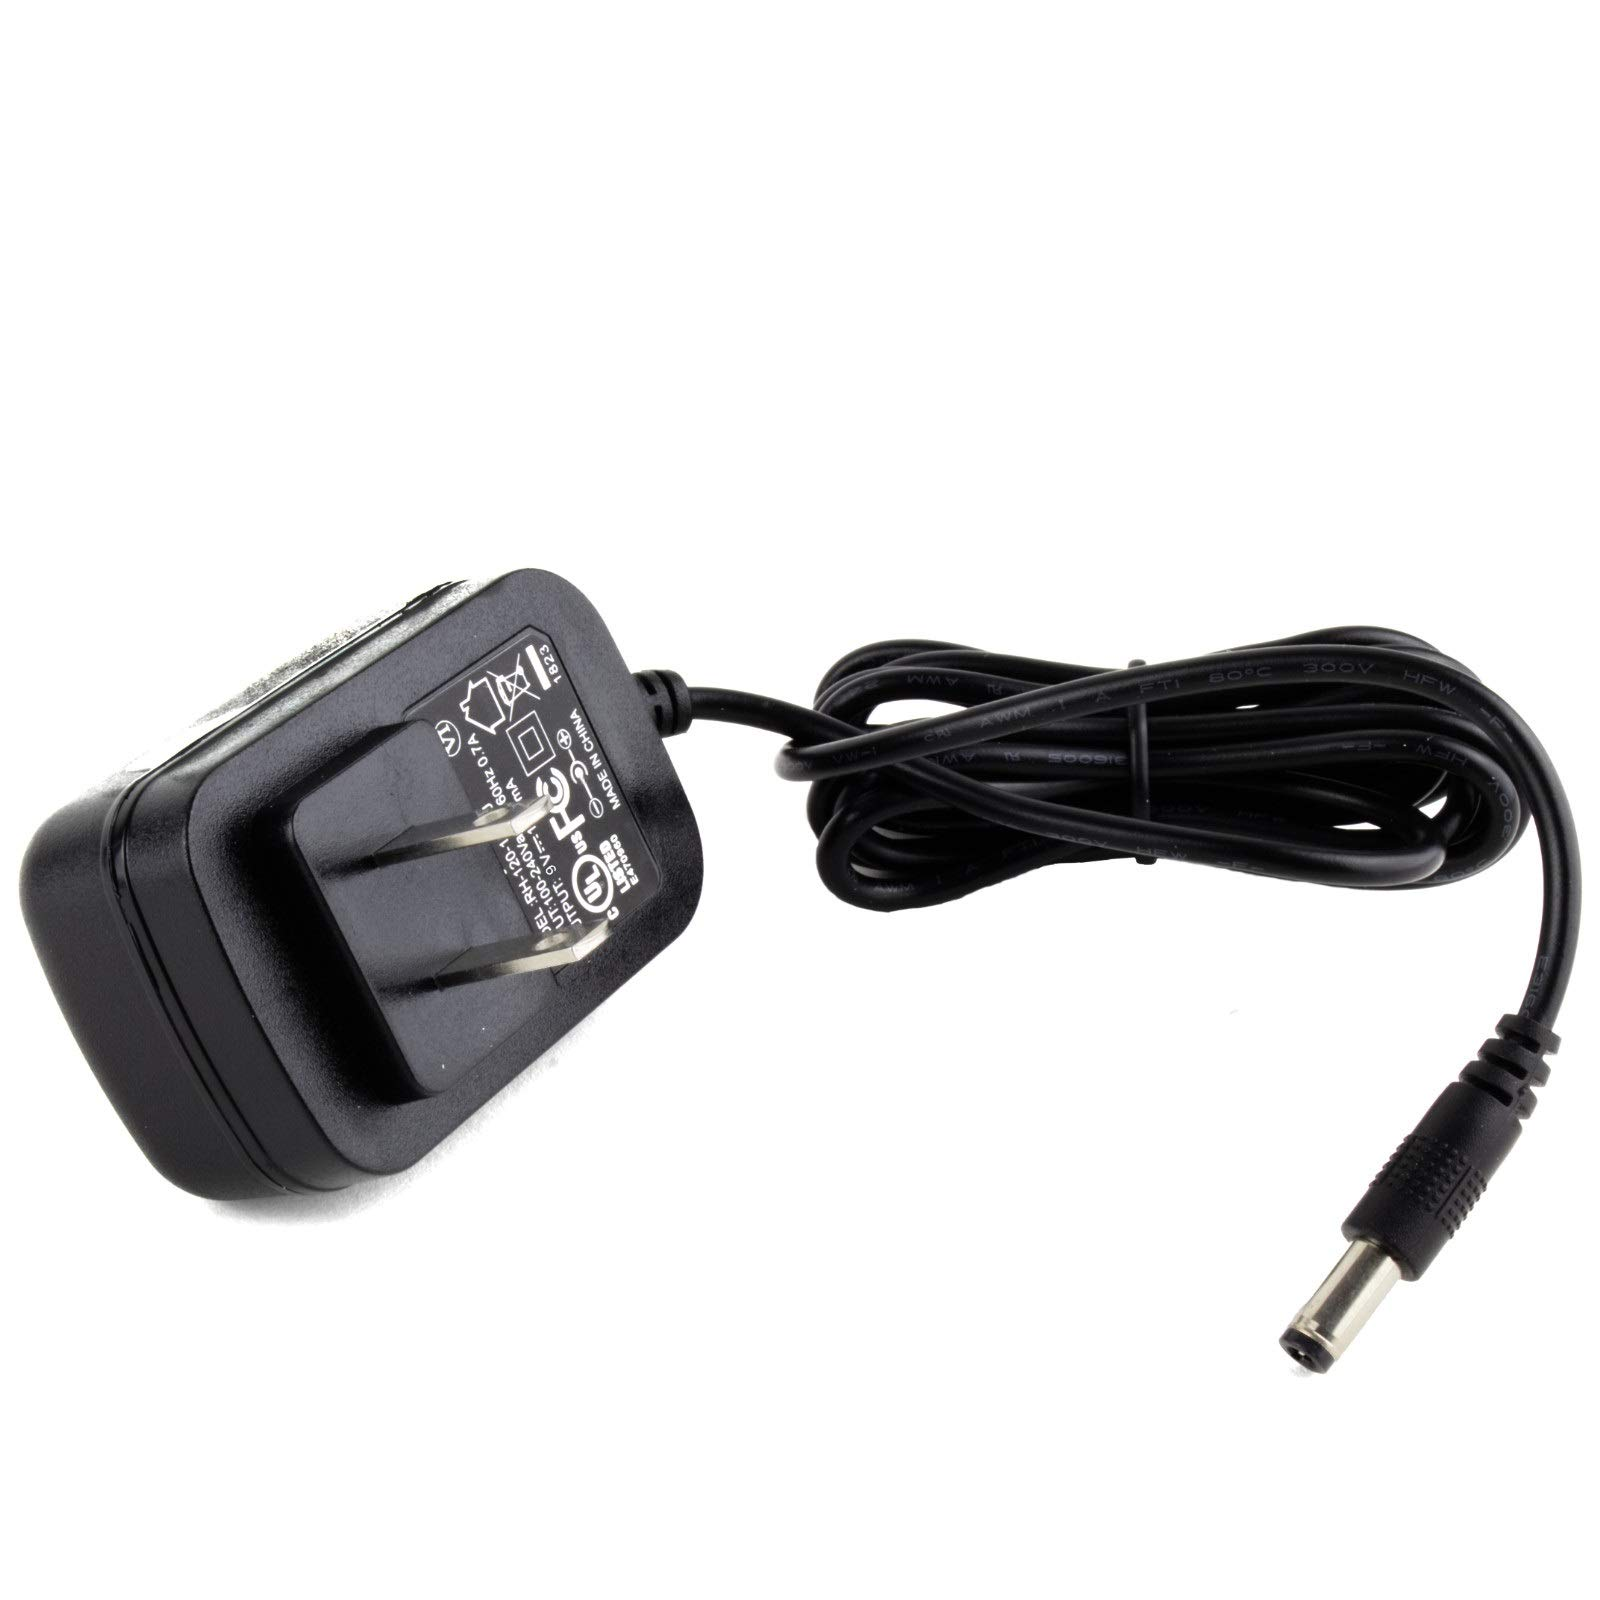 MyVolts 9V Power Supply Adaptor Compatible with Dymo LetraTag S0883990 100H Label Printer - US Plug